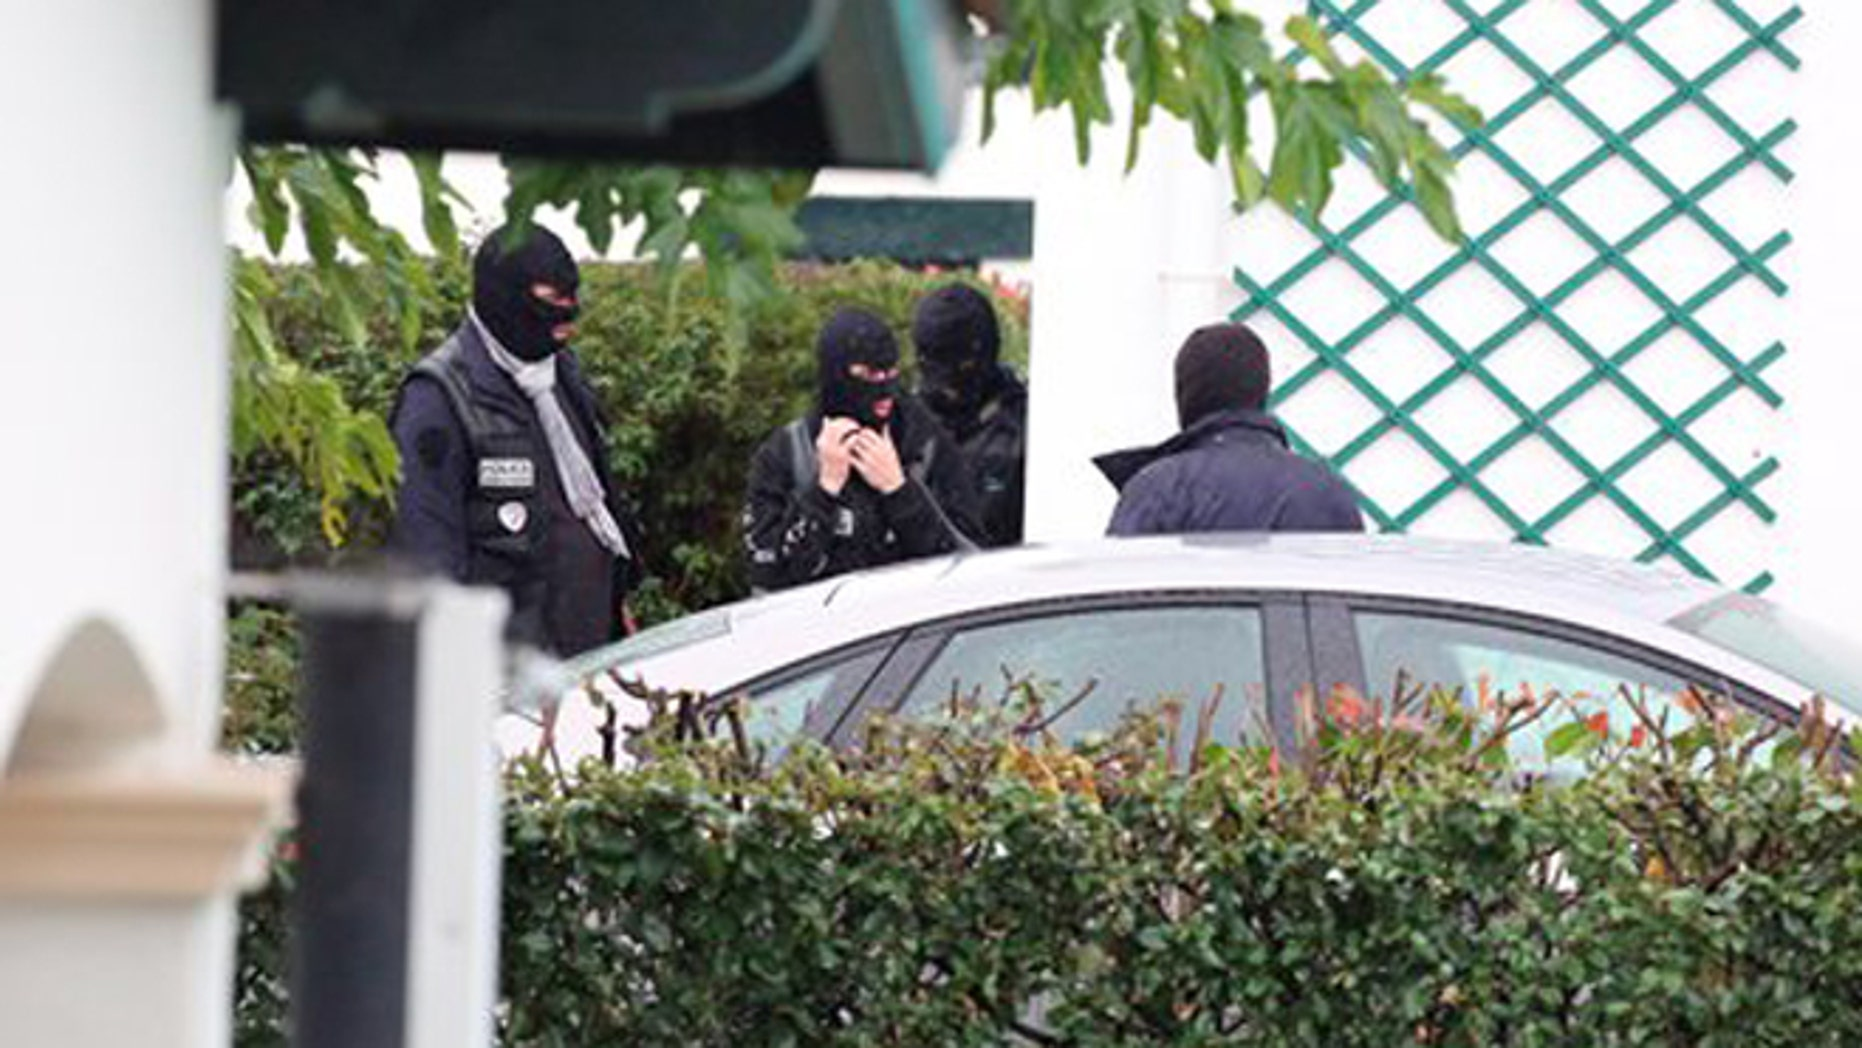 """French police officers outside a villa during a search operation in Ascain, south western France, Saturday, Nov. 5, 2016. French police arrested the leader of the debilitated Basque militant group ETA, Spain's Interior Ministry said Saturday. Spanish authorities identified Mikel Irastorza as """"currently the maximum leader"""" of ETA. (AP Photo)"""